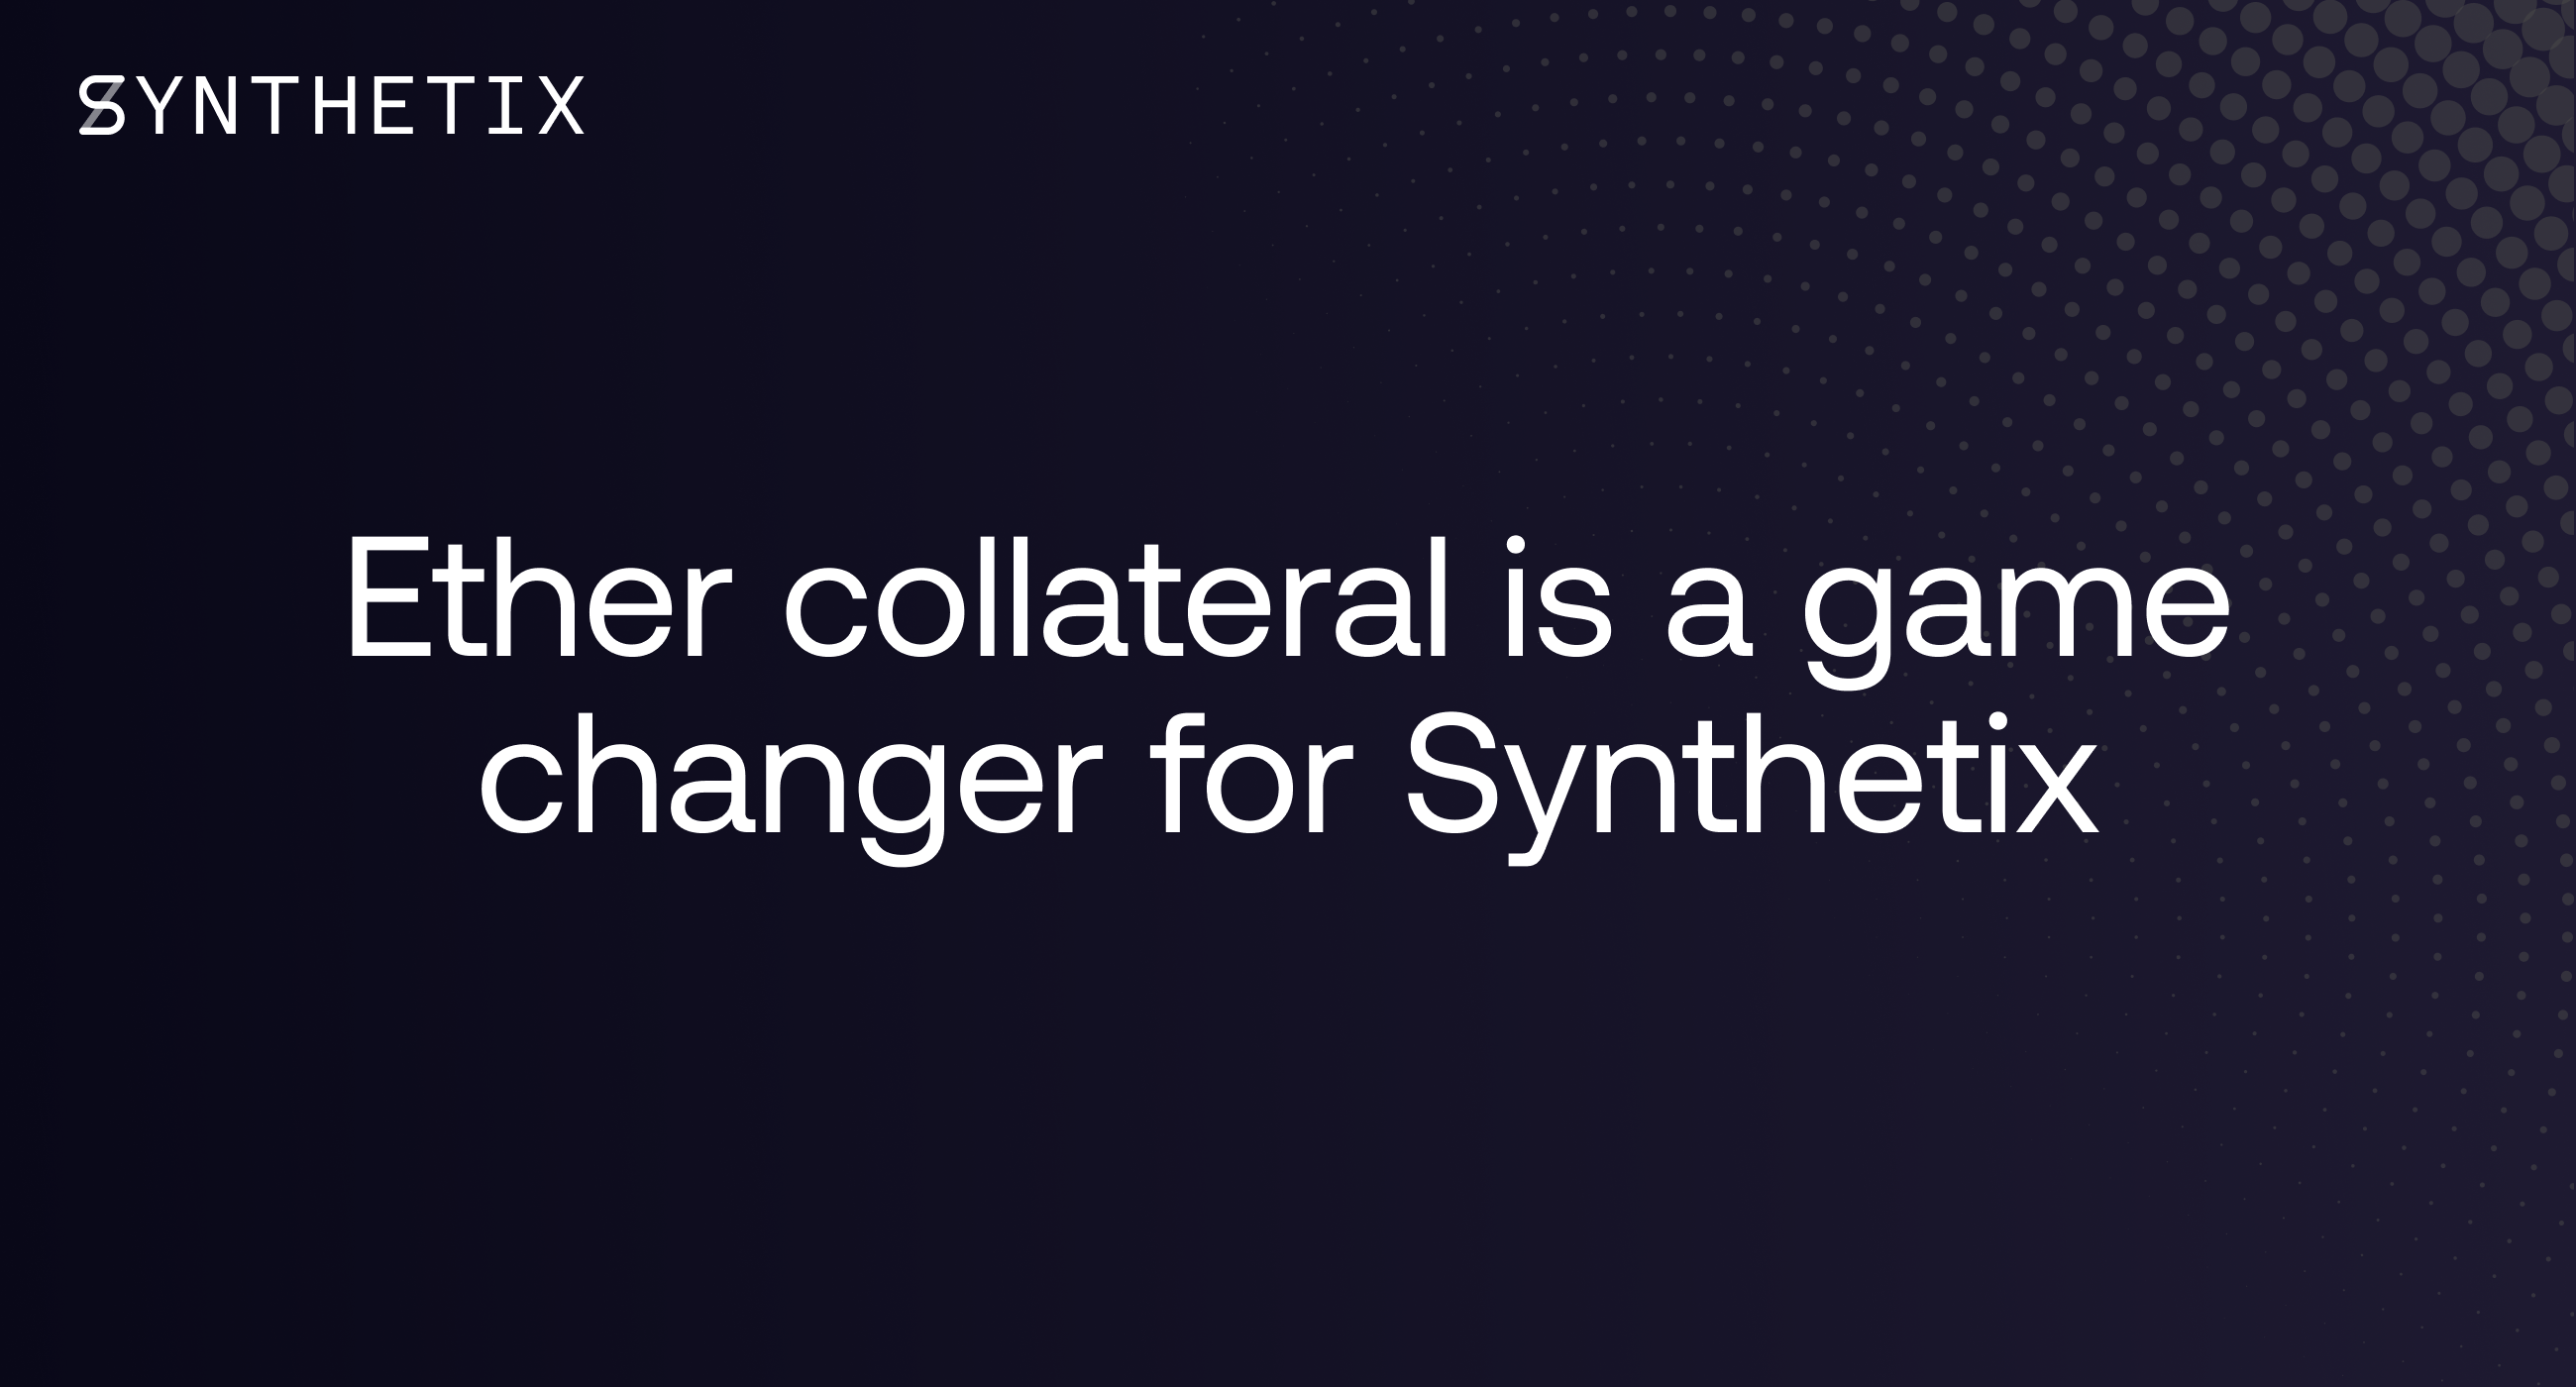 Ether collateral is a game-changer for Synthetix